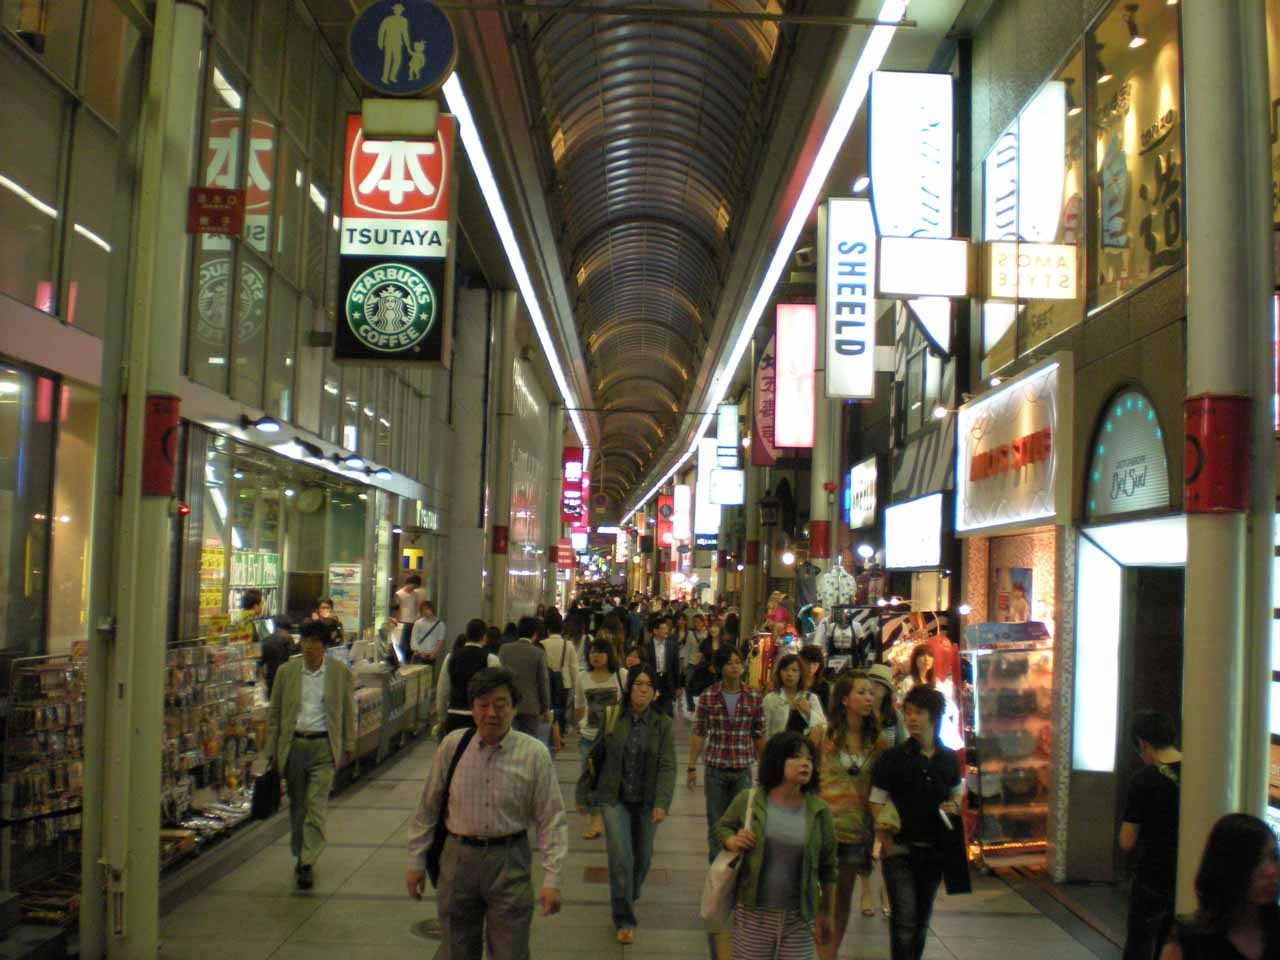 Inside the shopping arcades of the Dontonburi District of Osaka